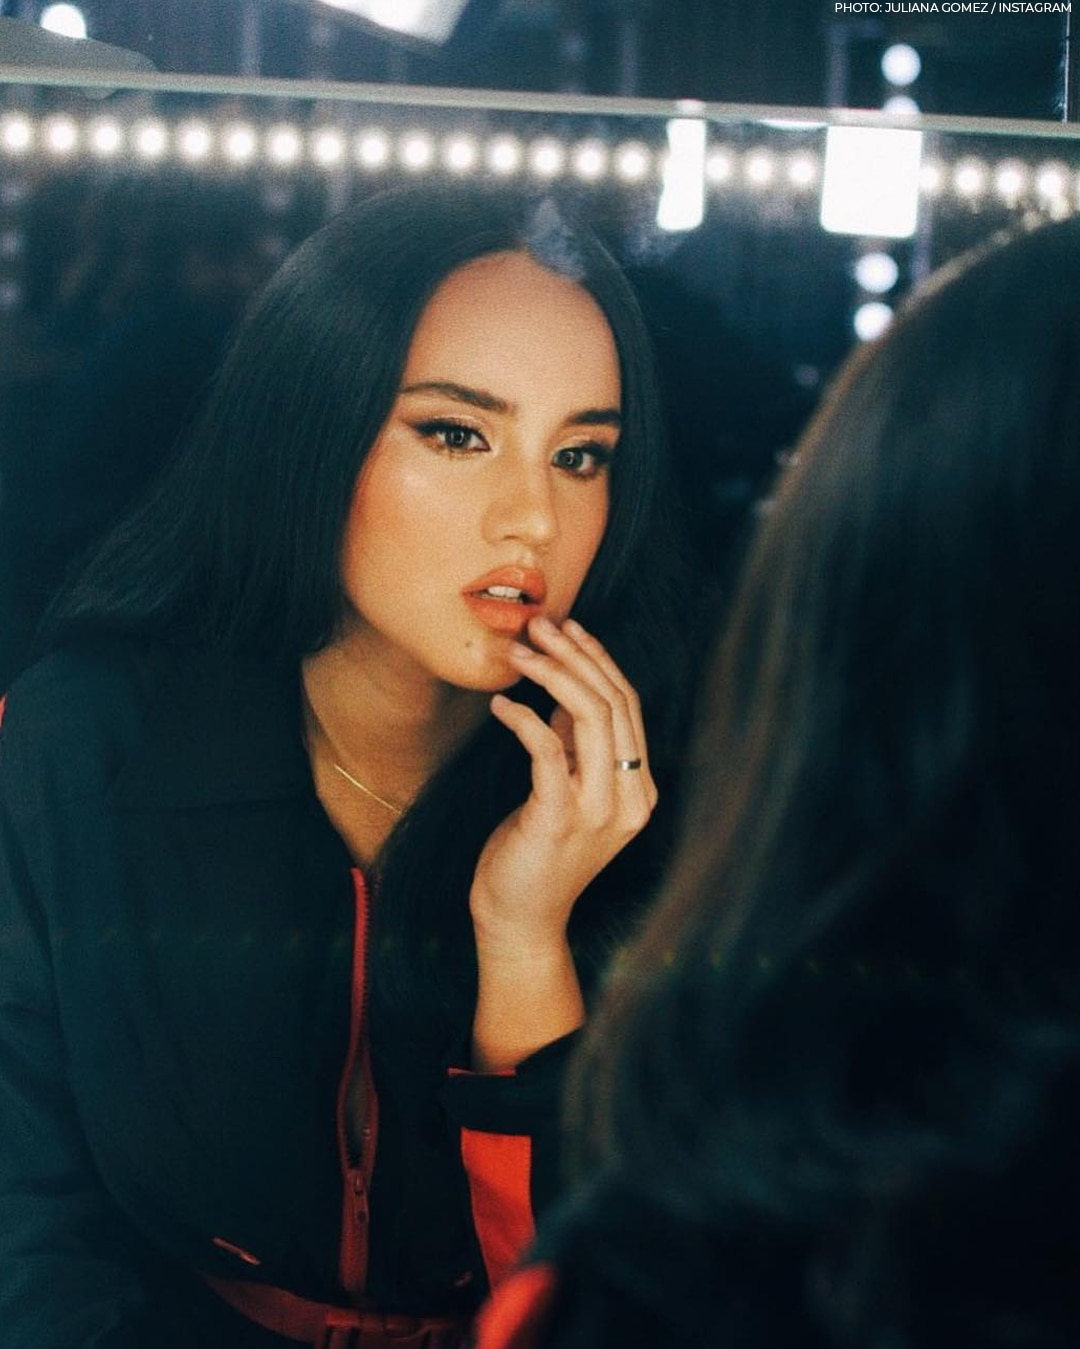 Juliana Gomez, like her parents Richard Gomez and Lucy Torres-Gomez also does sports and modeling!